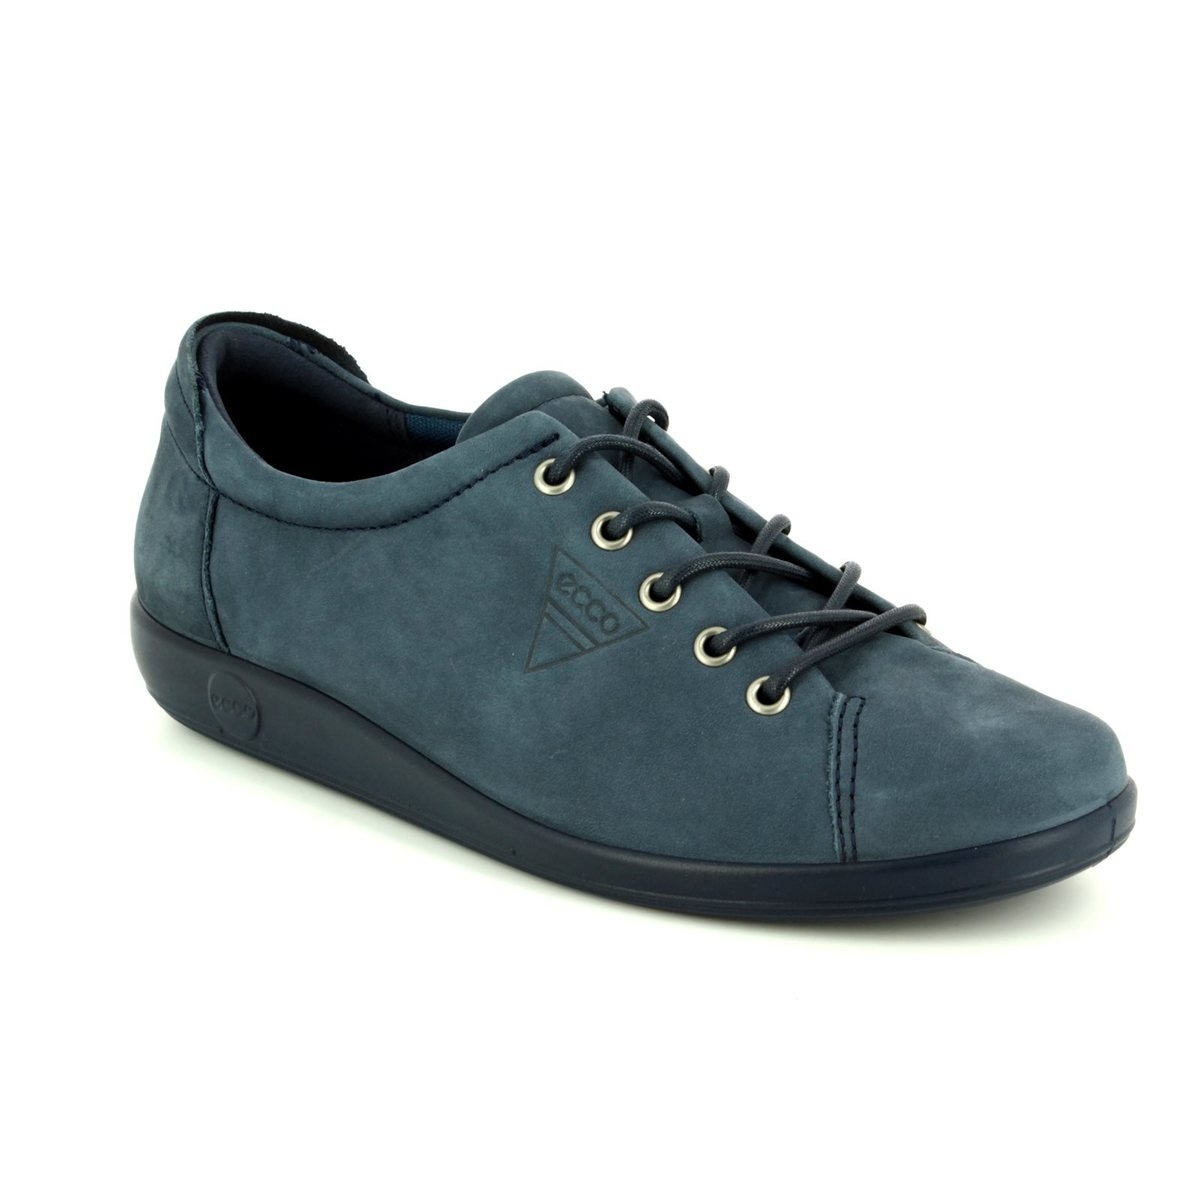 ECCO Lacing Shoes - Navy nubuck - 206503 02038 SOFT 2.0 f3aceaf2de2